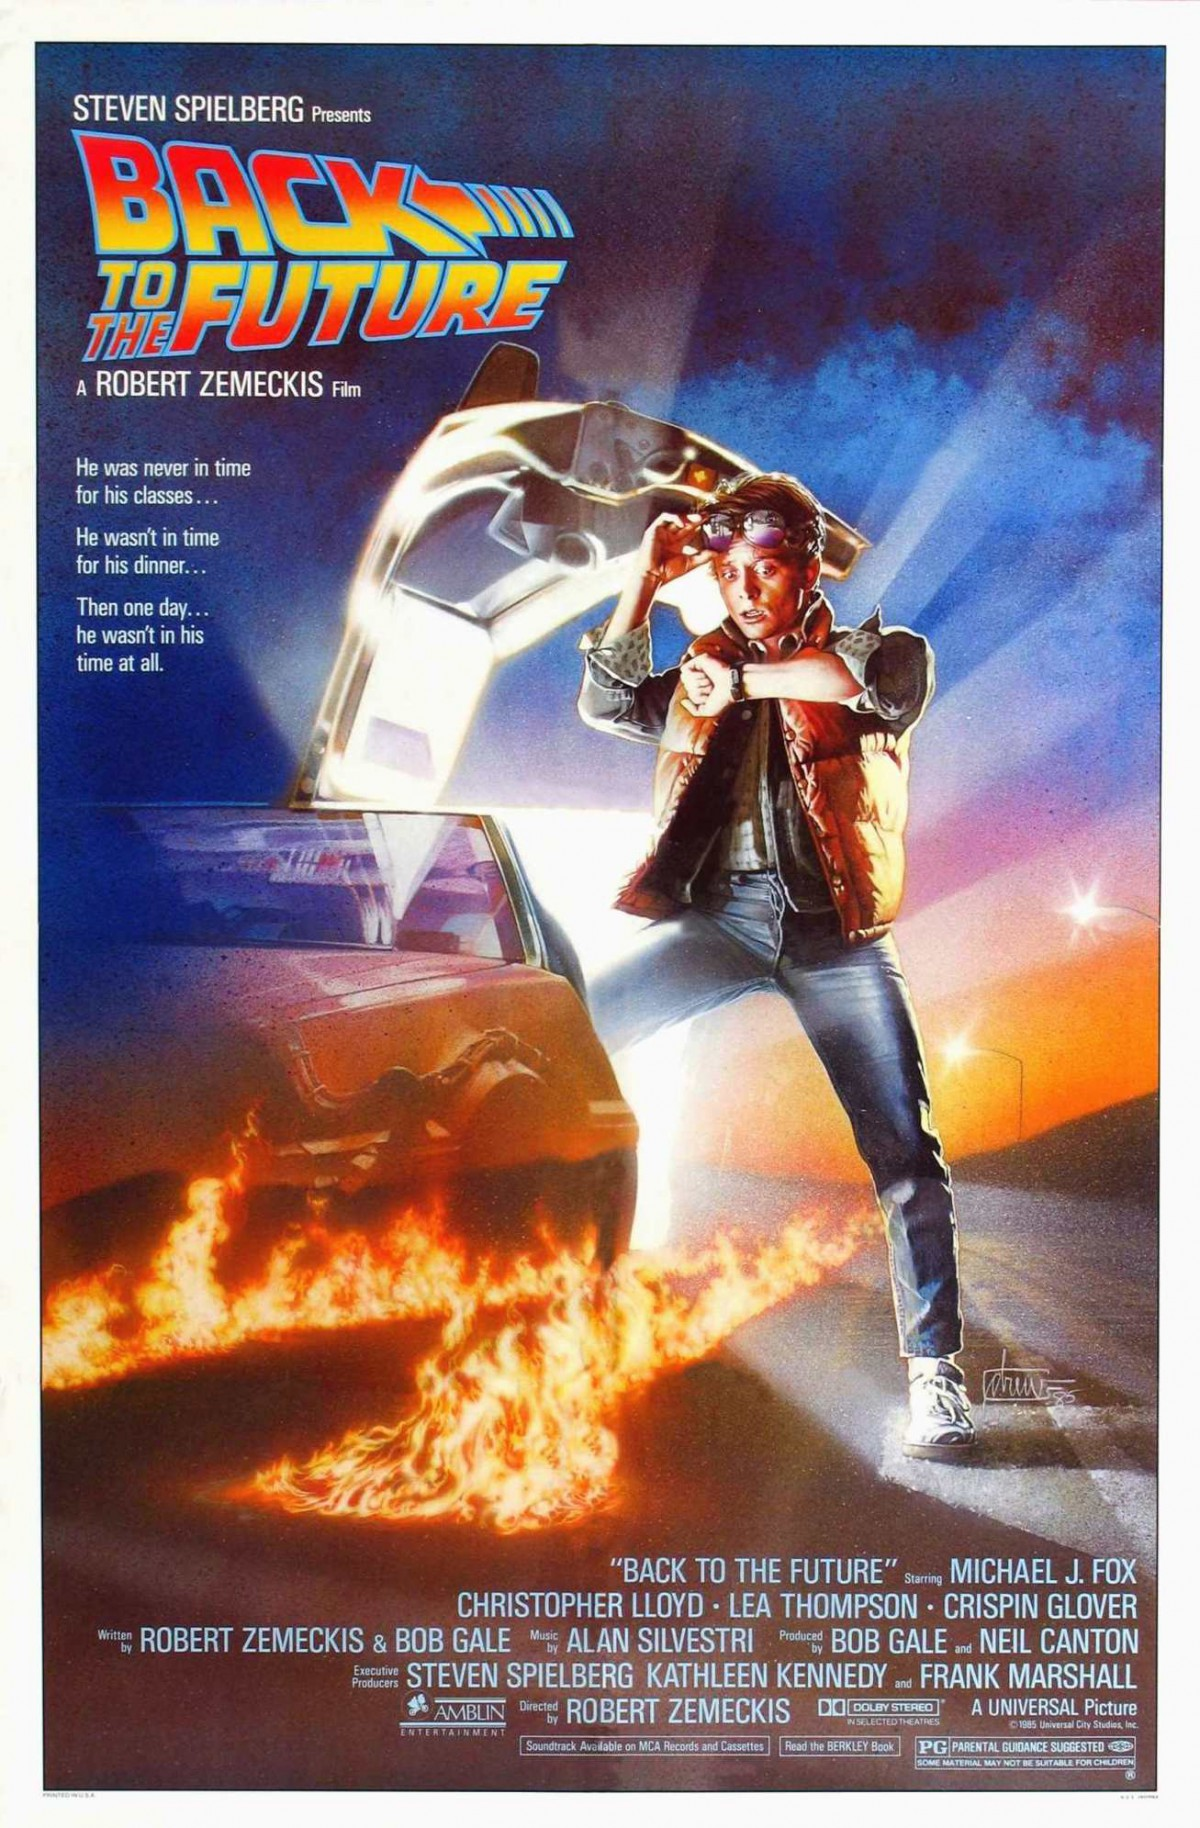 29. Back to the Future (1985)